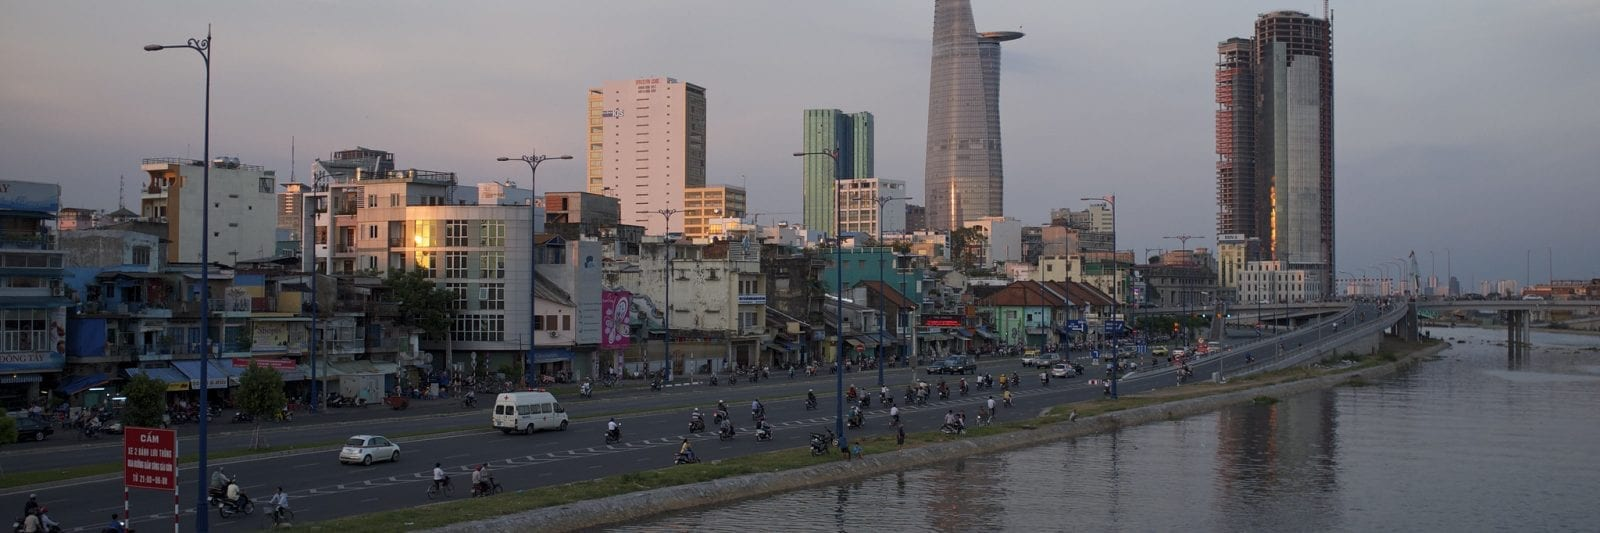 Image of the Ho Chi Minh City skyline by the waterfront with the Saigon One Tower visible